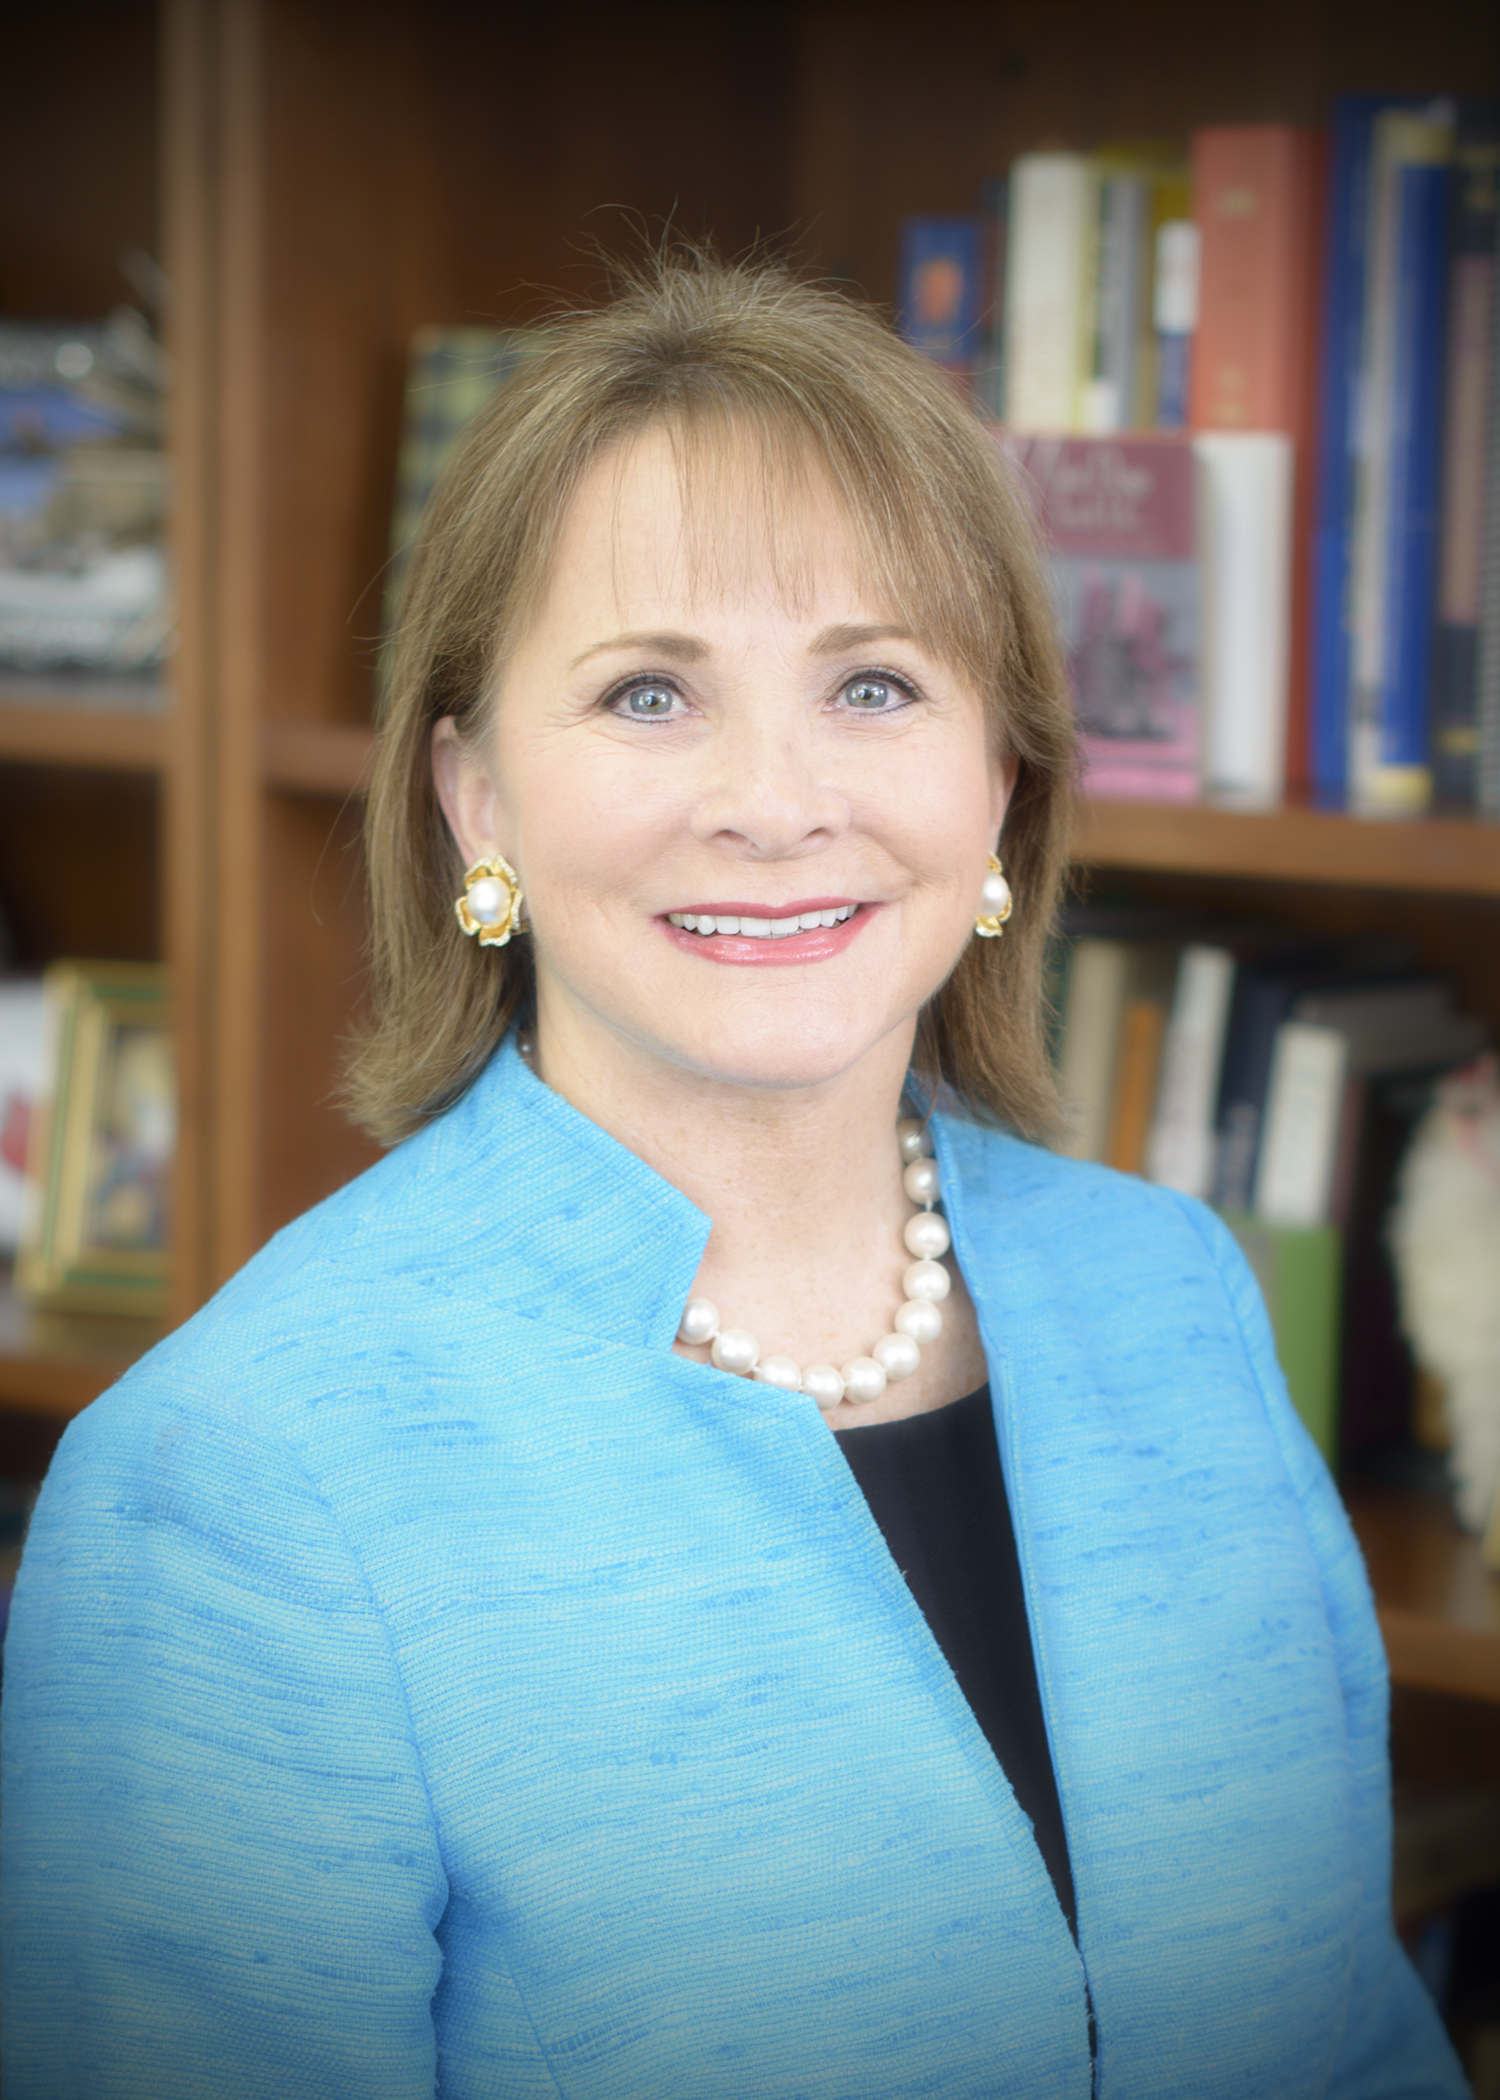 Toni Ganzel to participate in national deans' panel on medical education, live-streamed Sept. 8 at noon